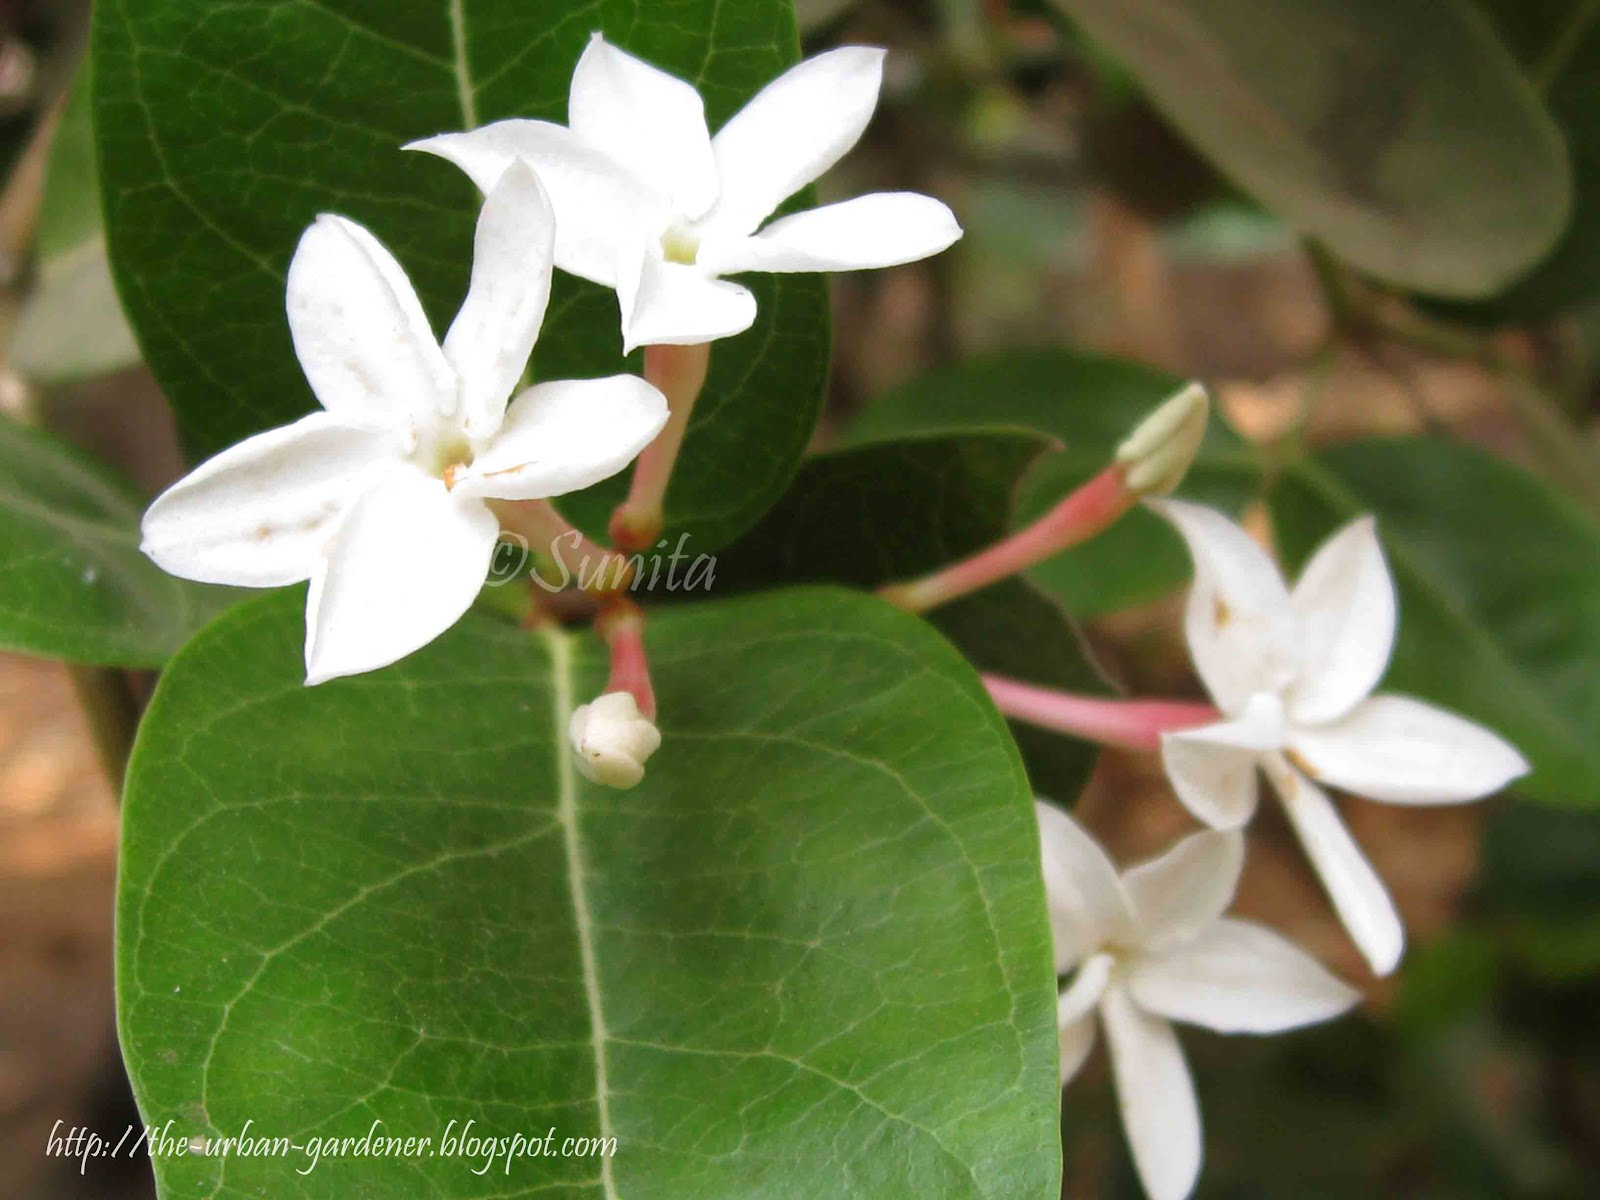 Nice white star like flowers mold wedding and flowers ispiration old fashioned white flower that looks like a star inspiration mightylinksfo